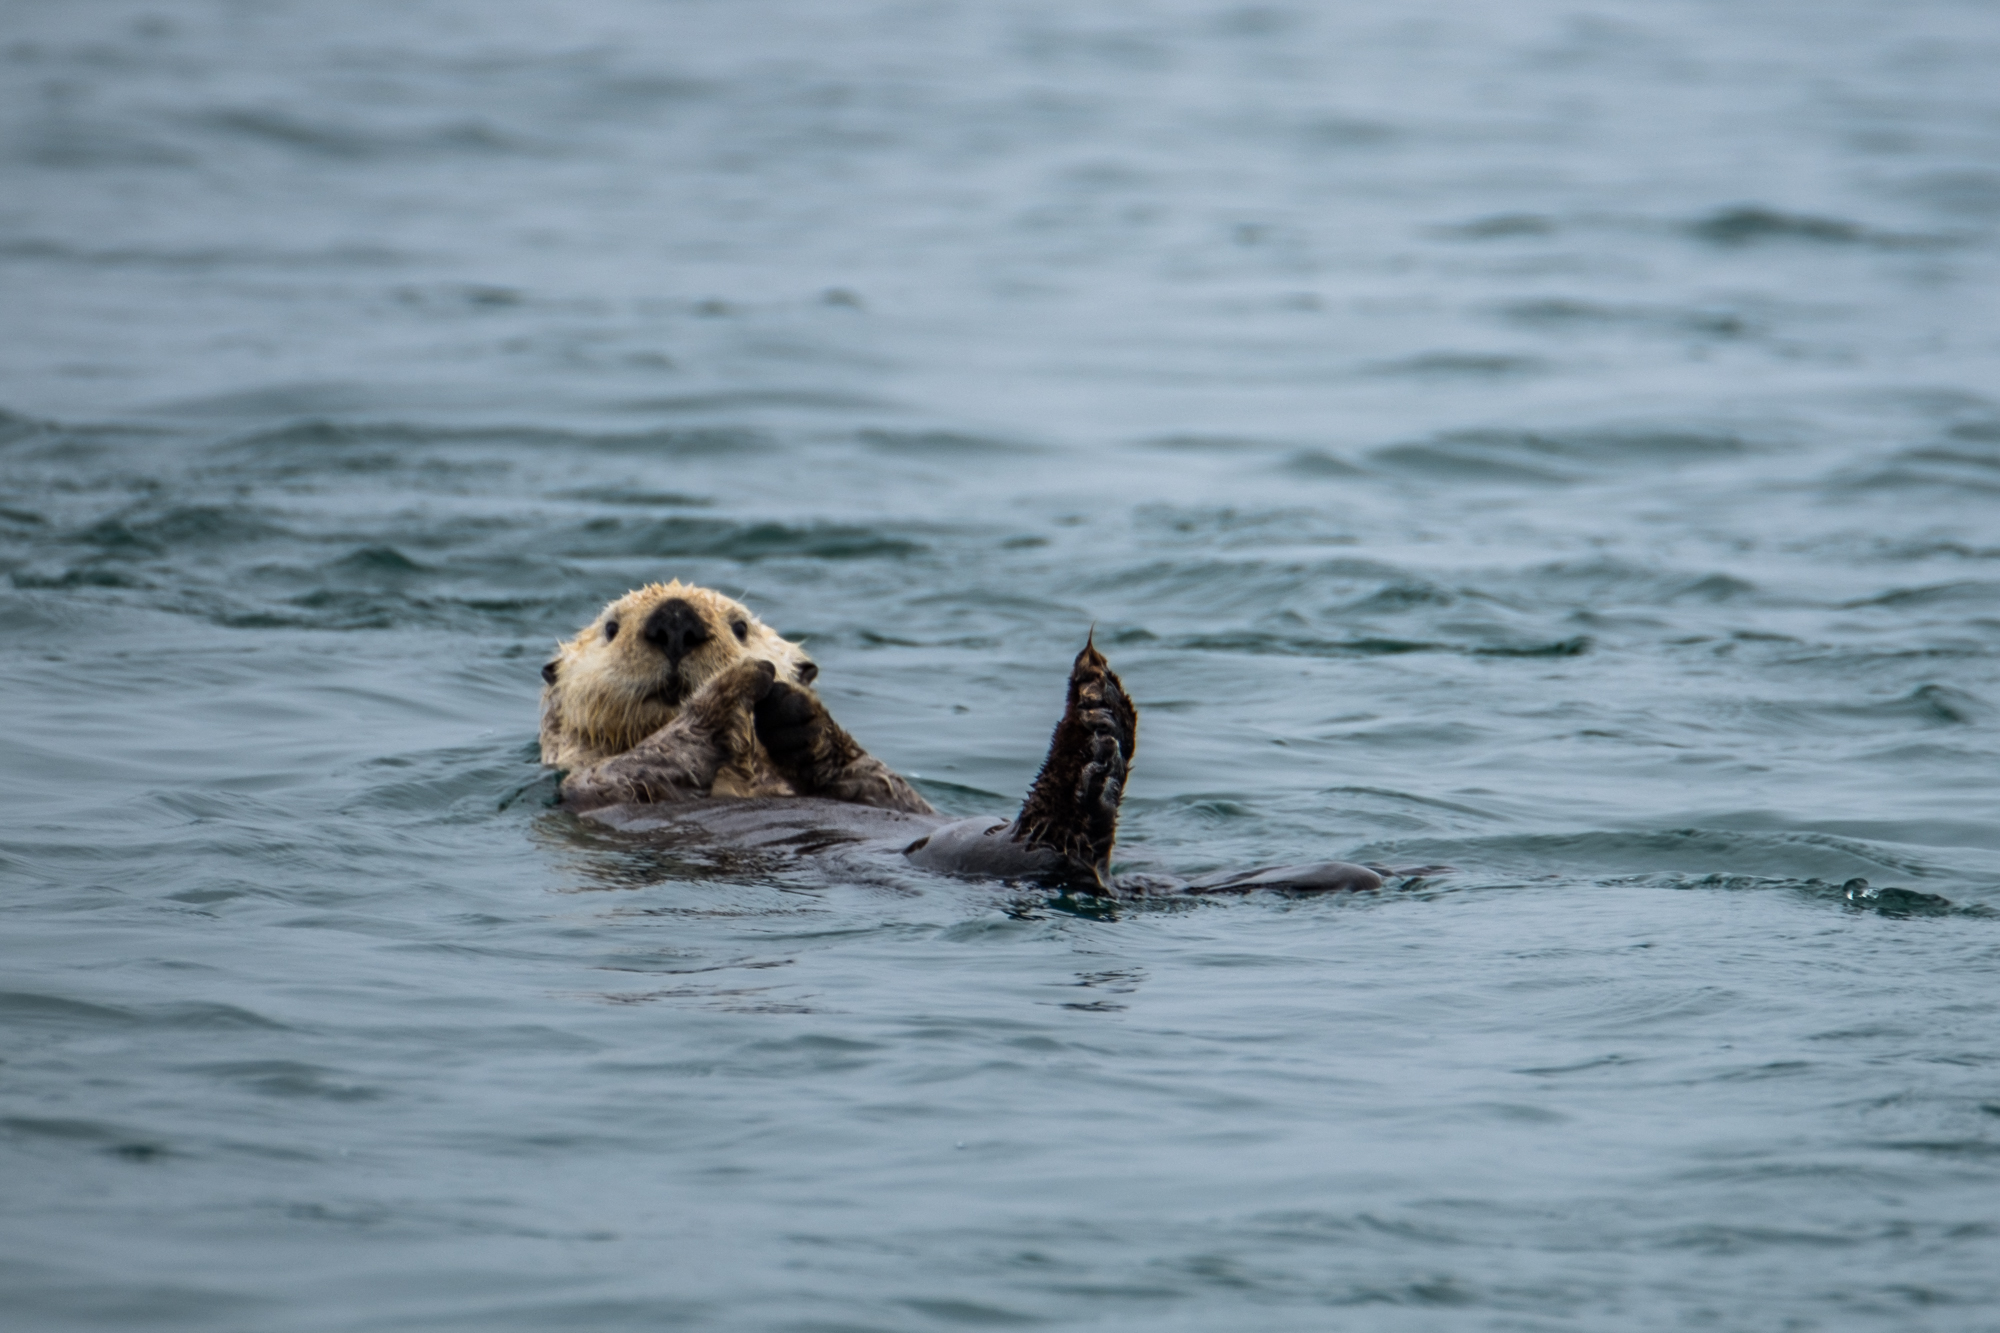 Sea Otters are the best. They lounge on their backs as if they rule the world and couldn't care less about what is going on around them.